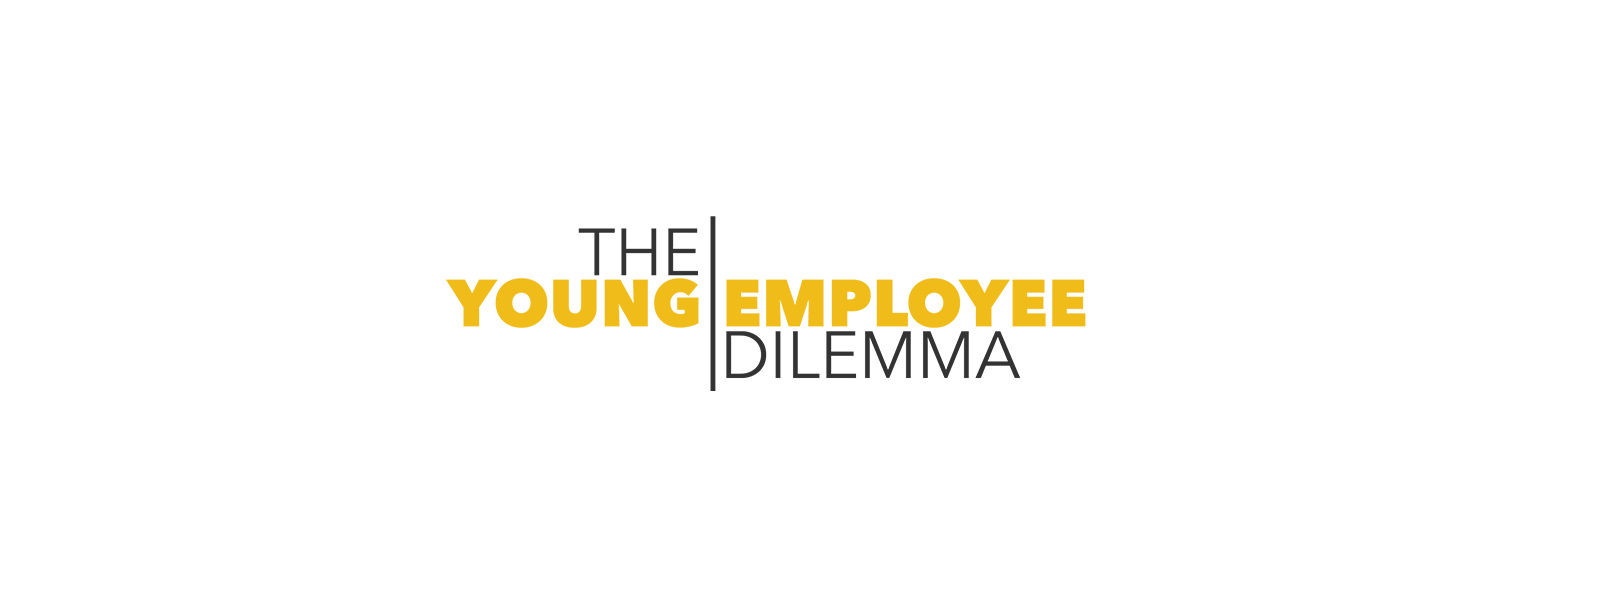 The Young Employee Dilemma